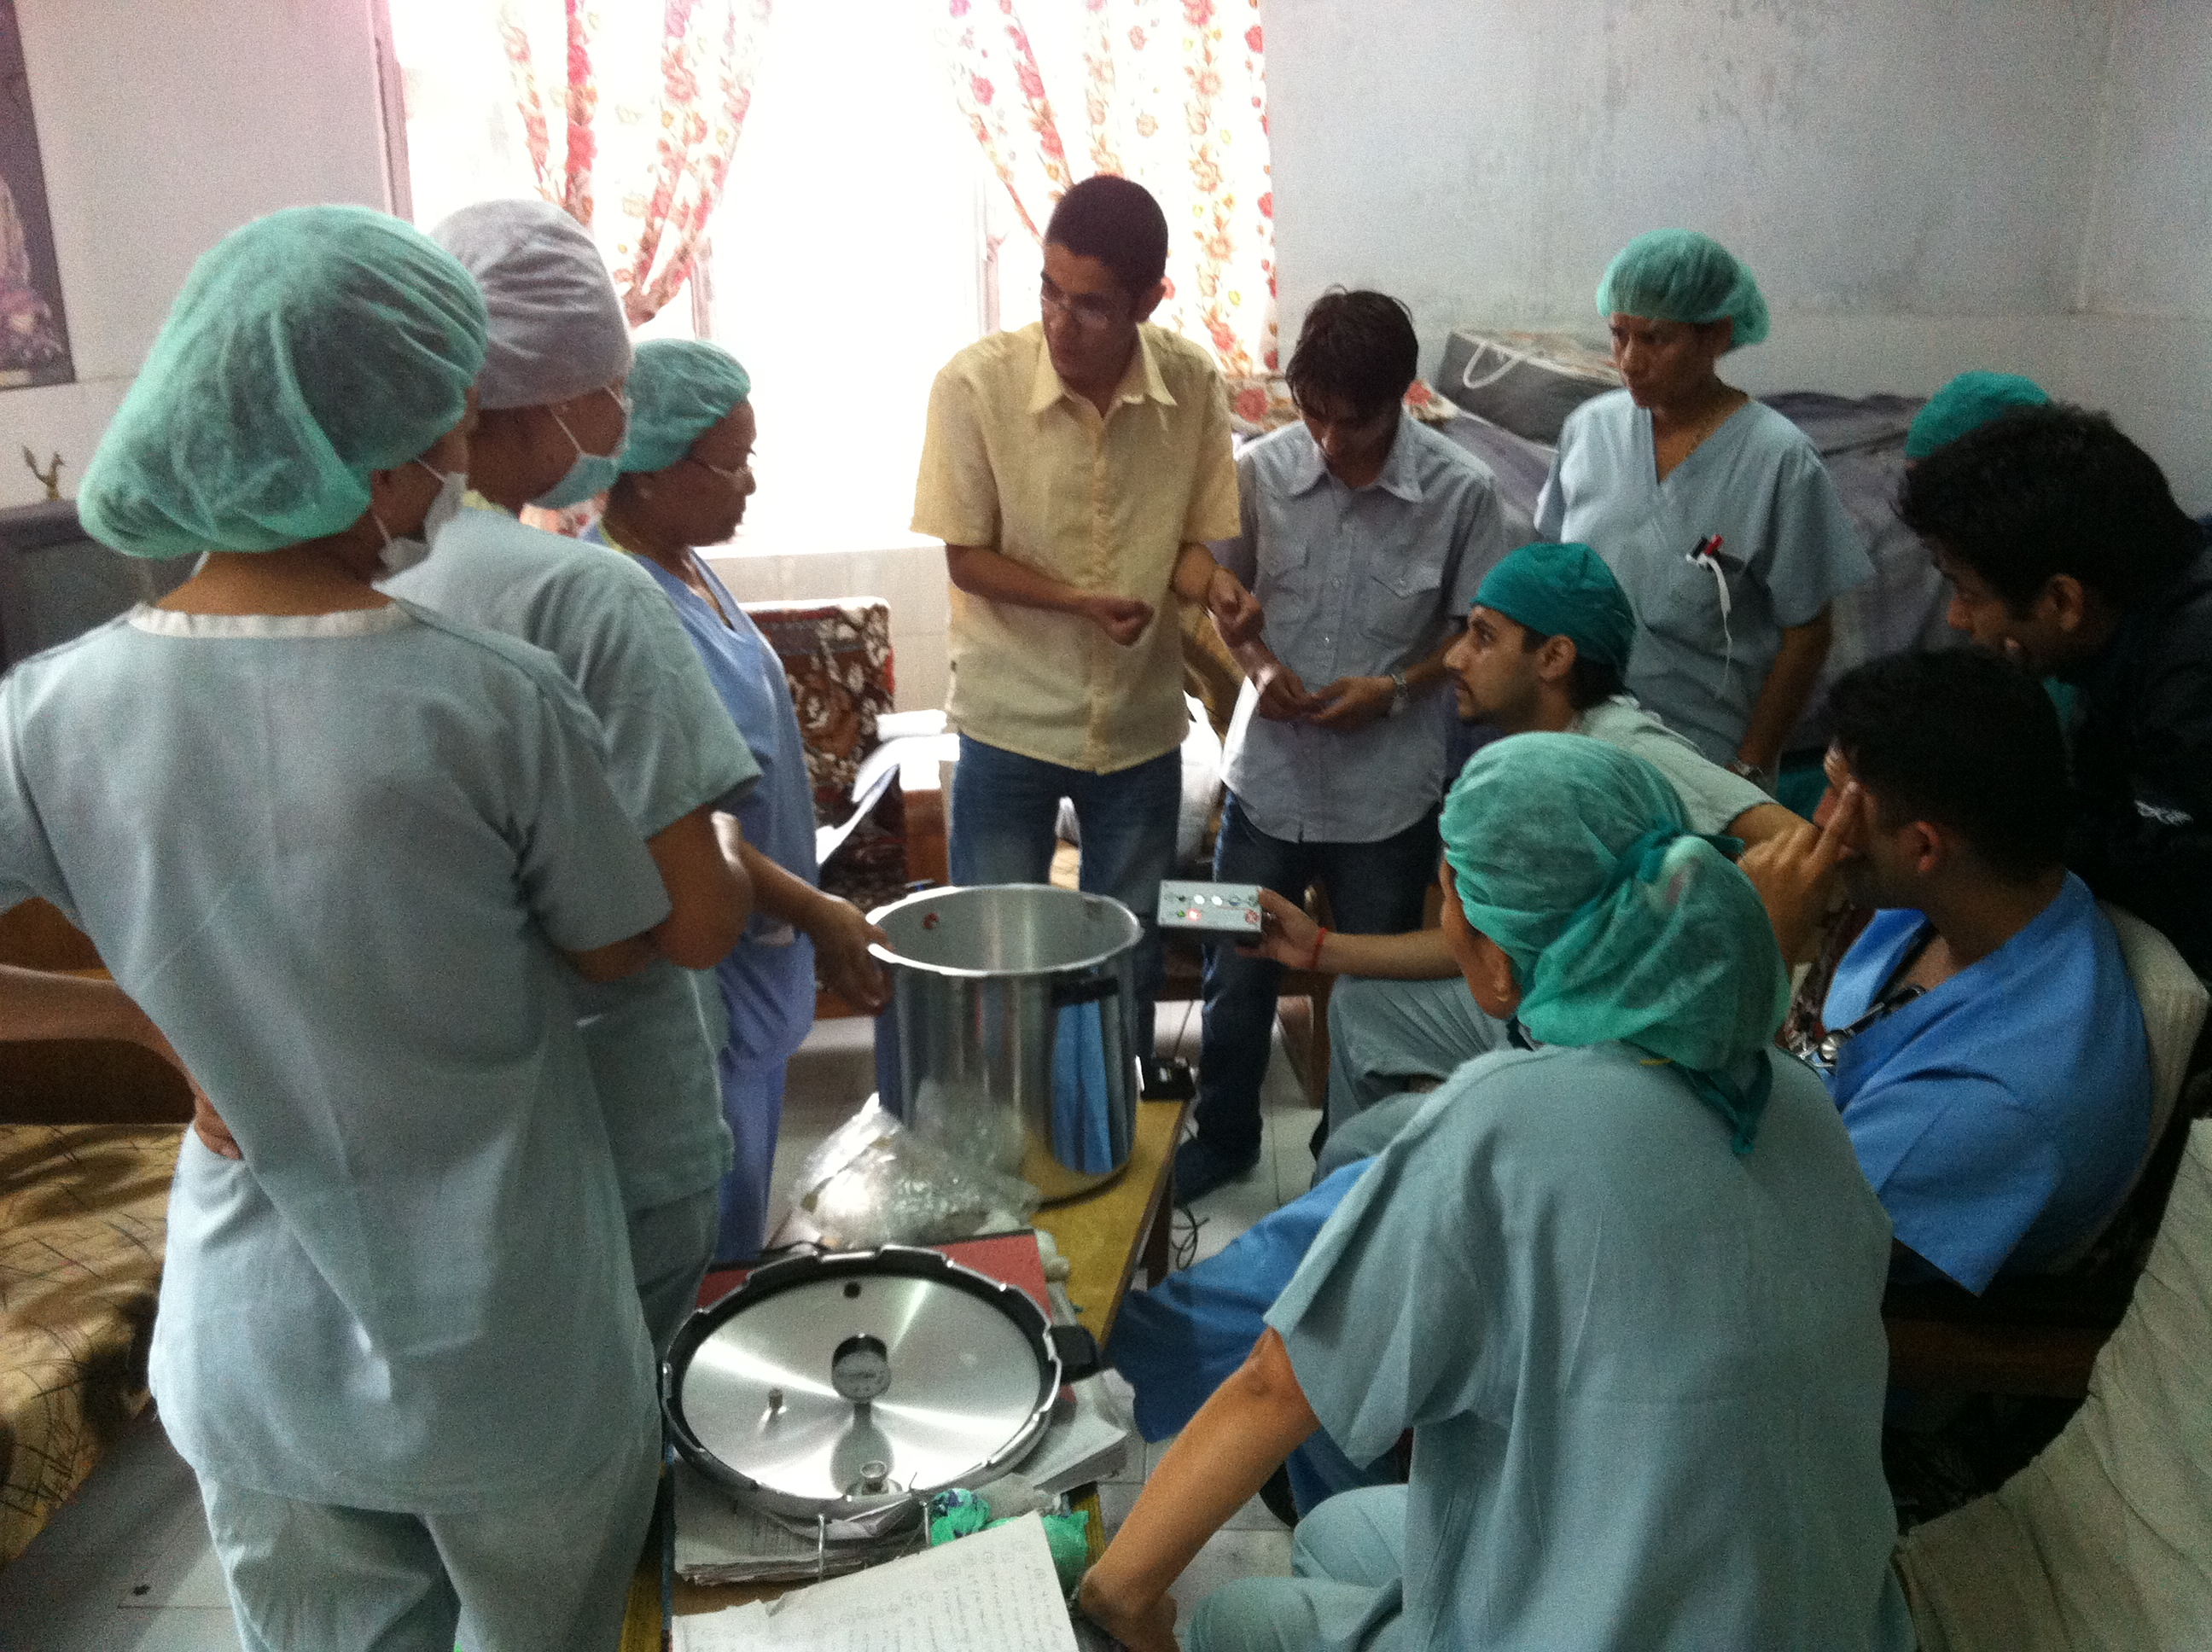 Providers using an OttoClave instrument sterilization system